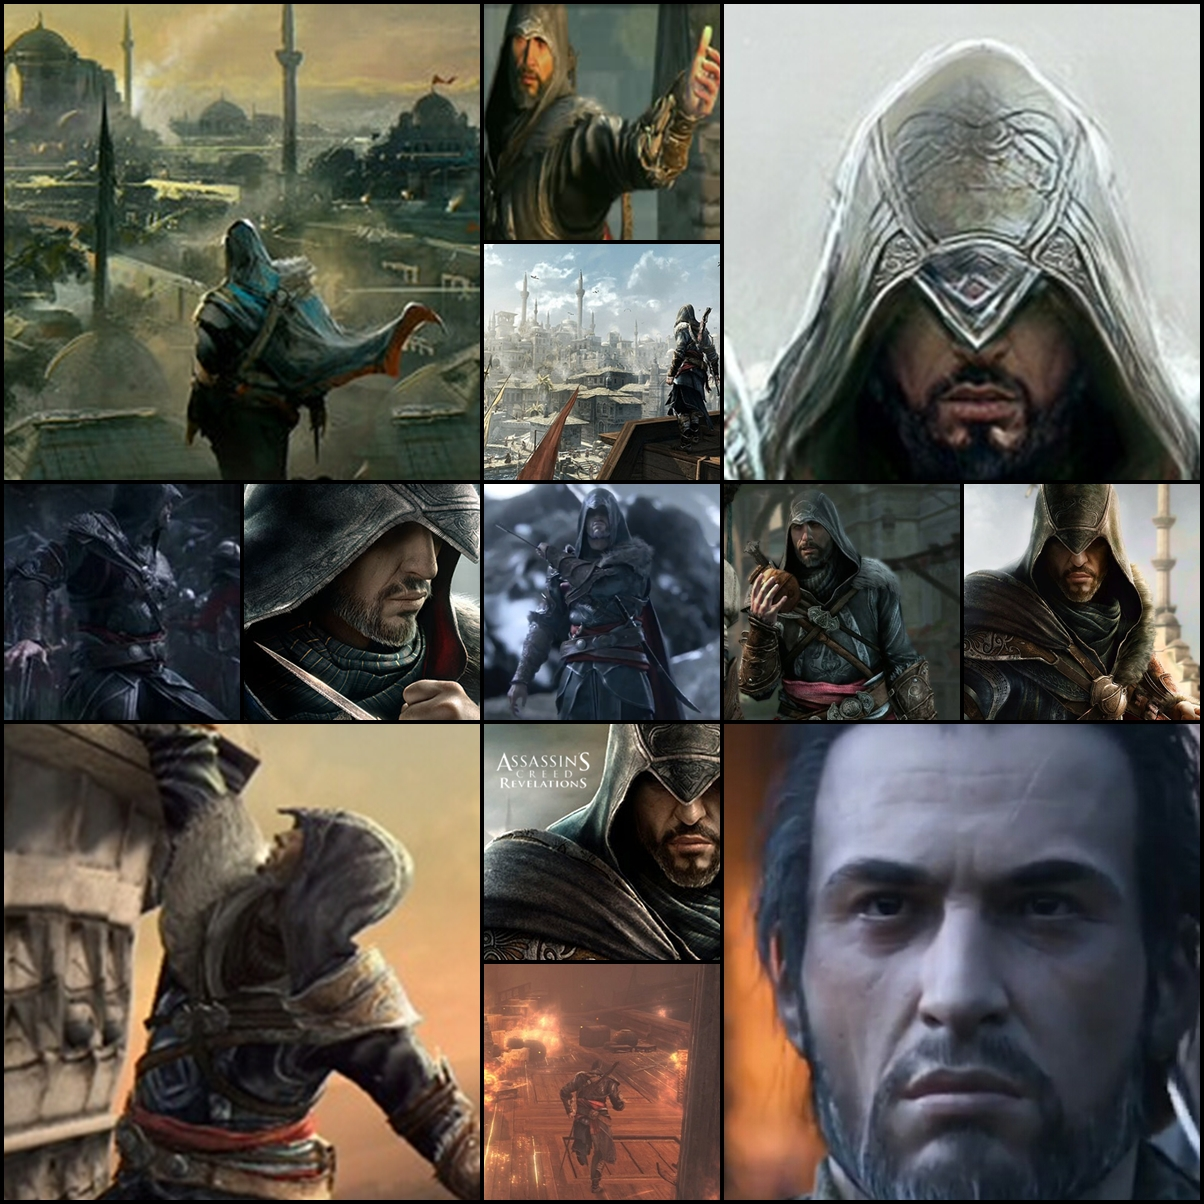 assassin's creed images ezio hd wallpaper and background photos